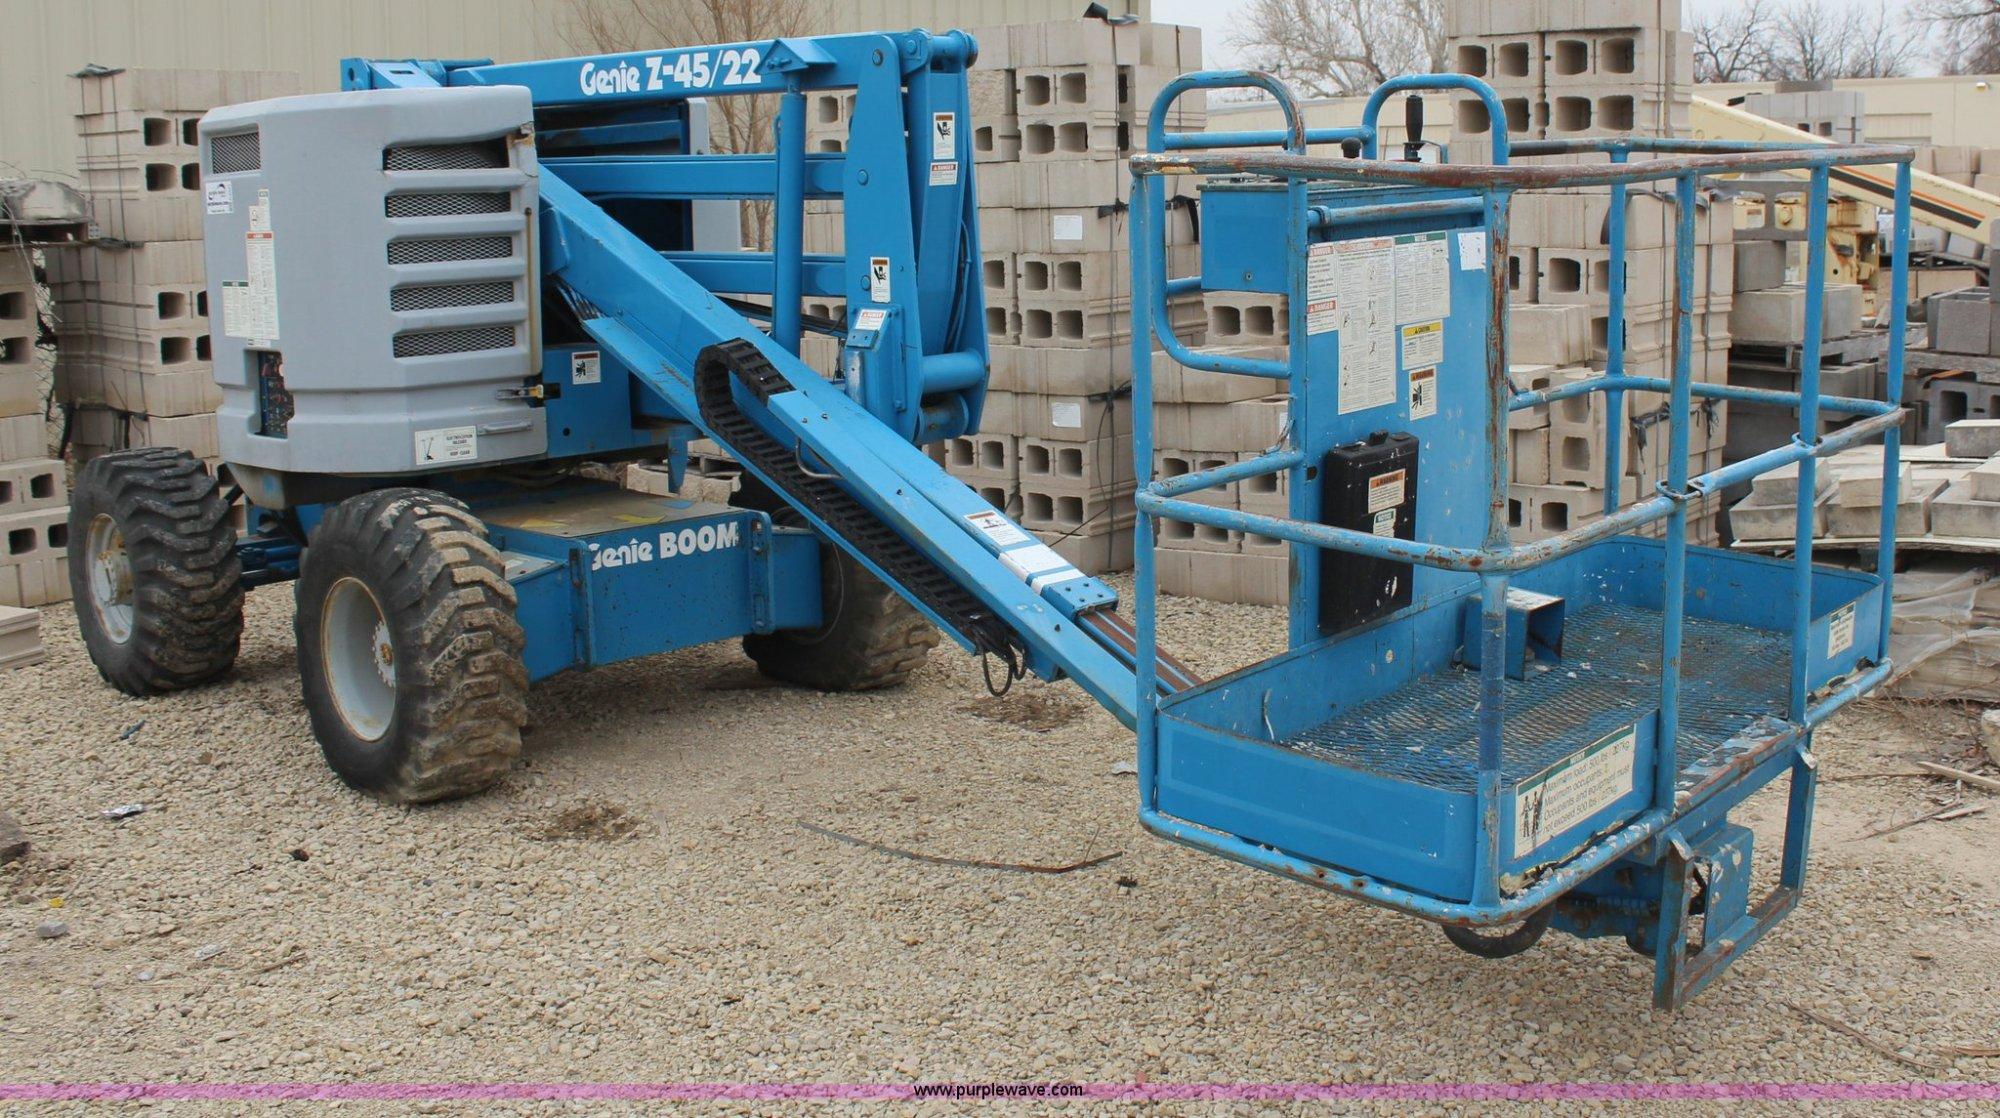 hight resolution of h6241 image for item h6241 1995 genie z45 22 boom lift